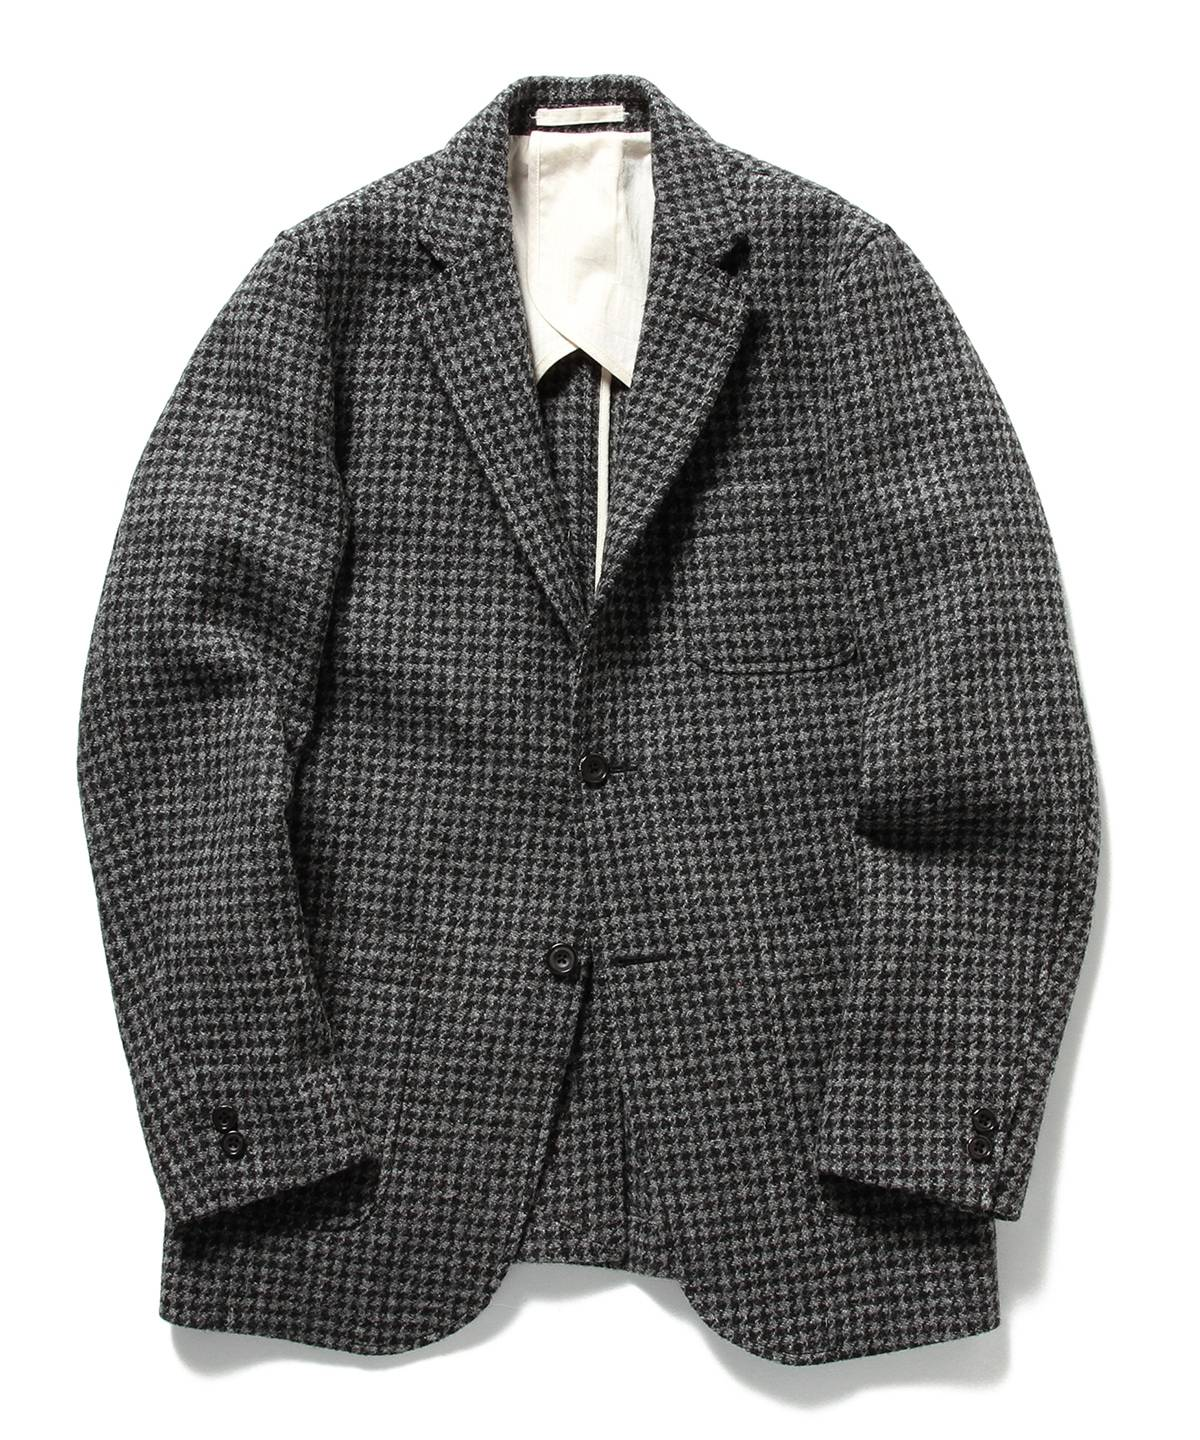 6faf97f060a12 Beams Plus Houndstooth Blazer - Harris Tweed Size m - Light Jackets for  Sale - Grailed